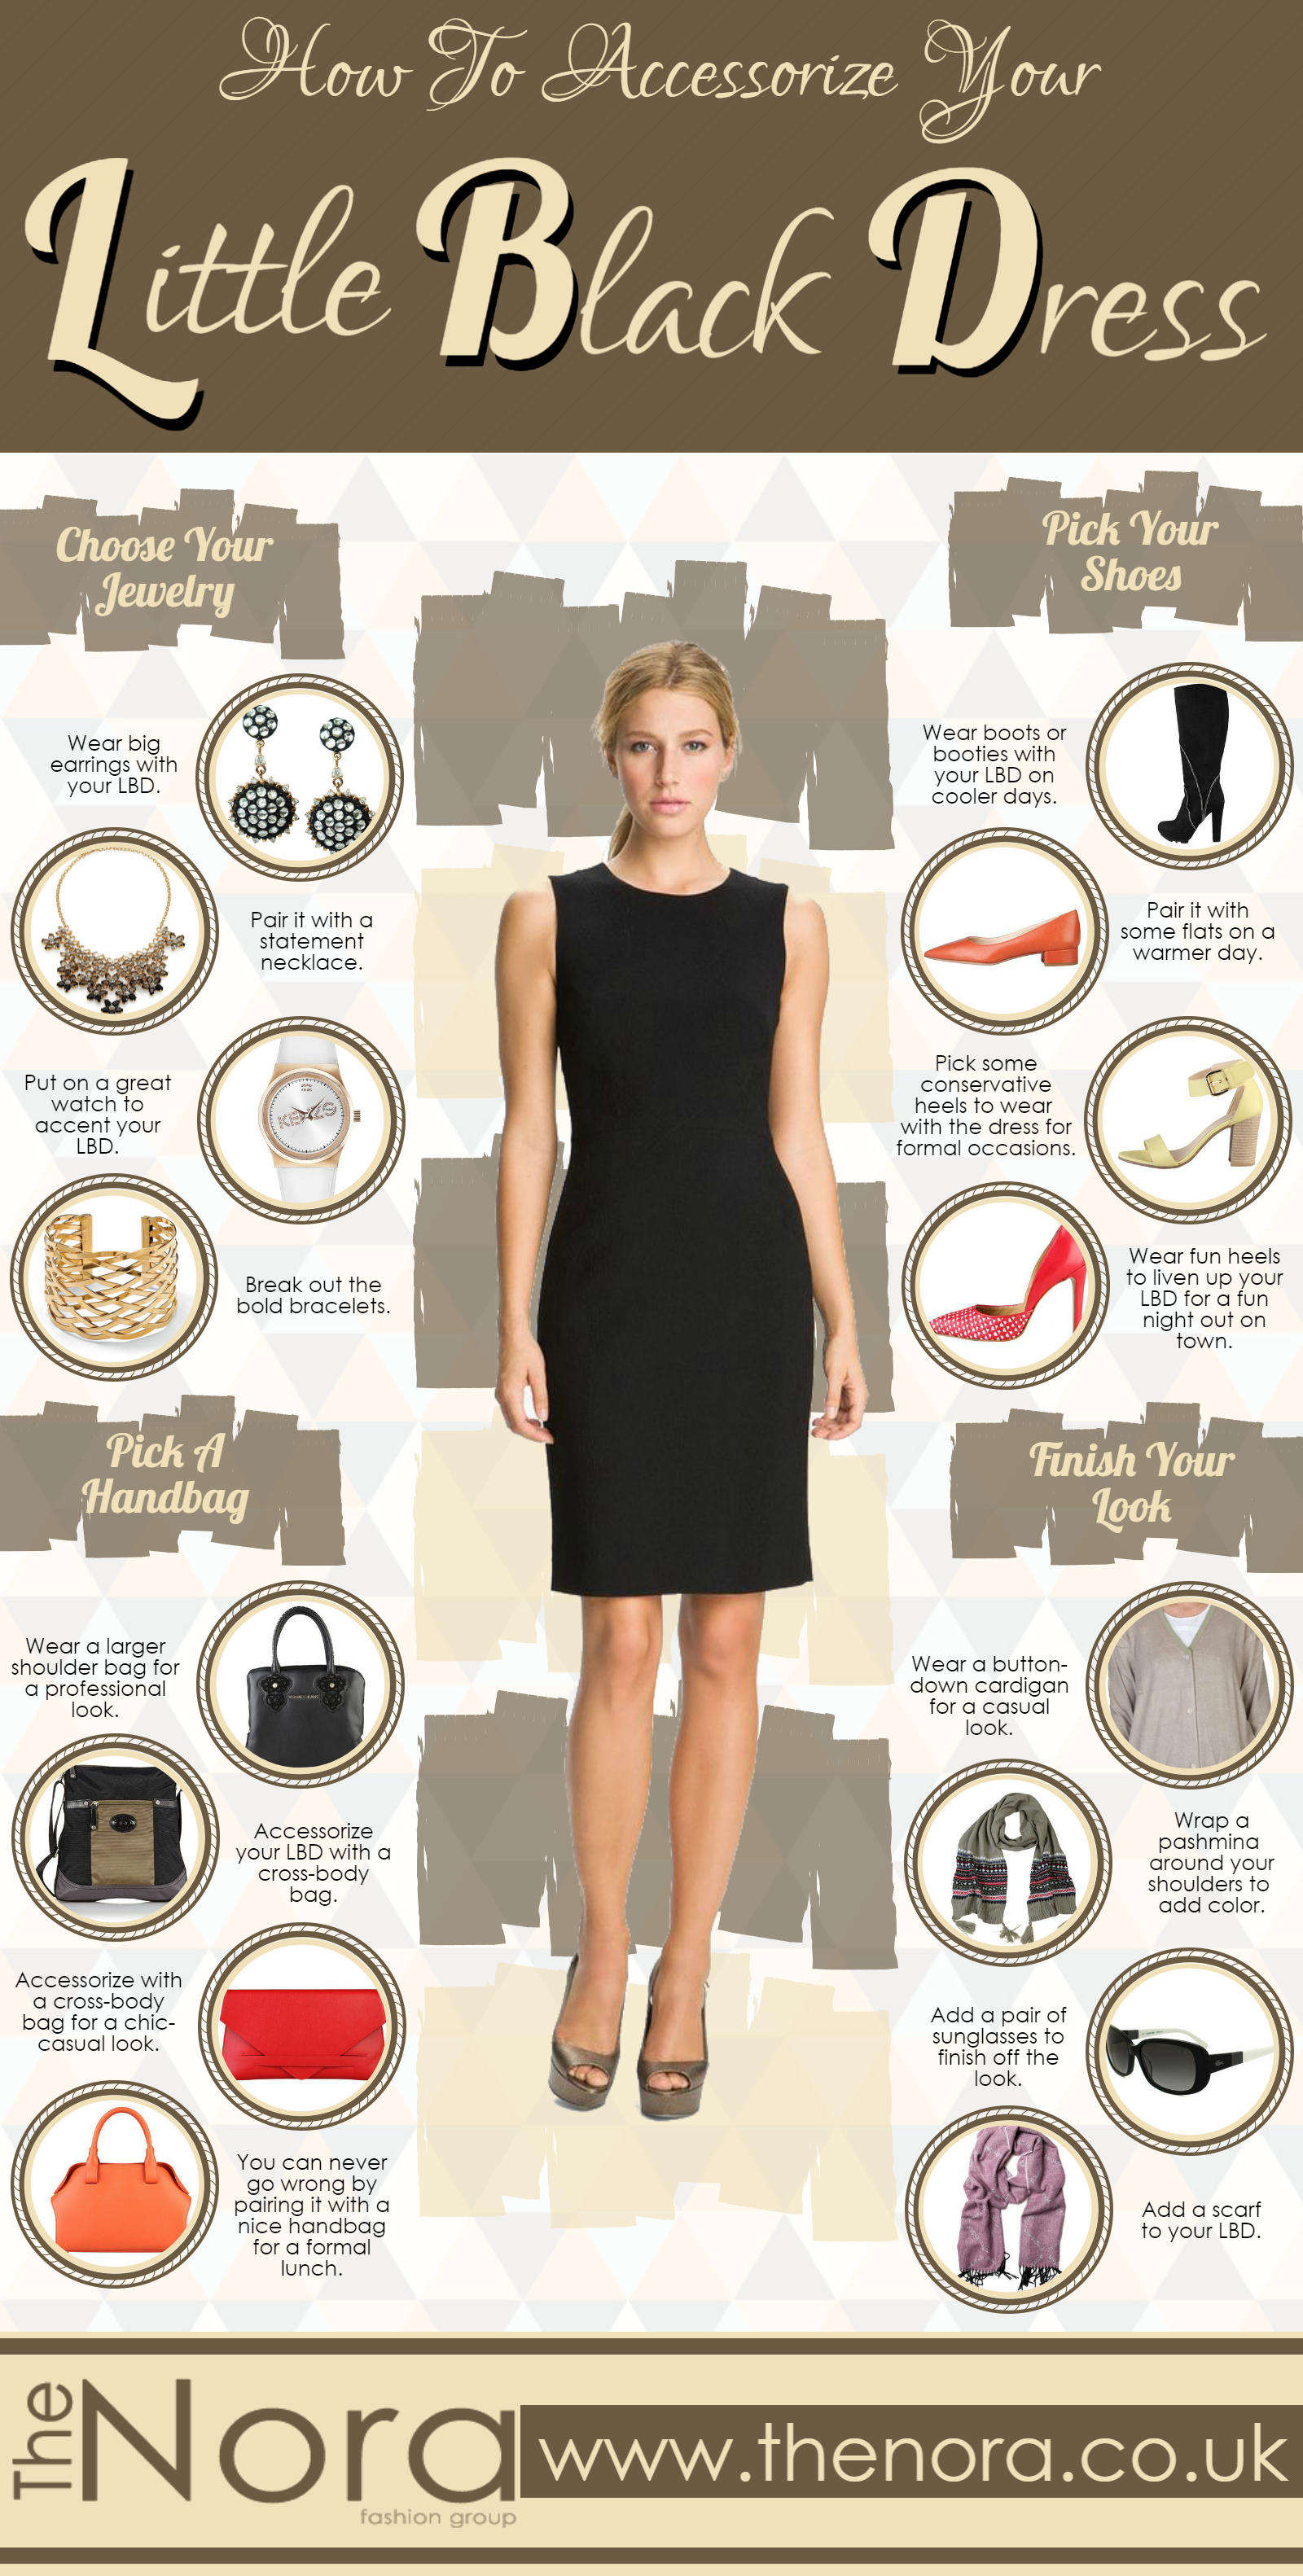 How To Accessorize Your Little Black Dress Infographic Mom Does Reviews Black Dress Black Dress Accessories Accessorize Black Dress [ 3164 x 1600 Pixel ]